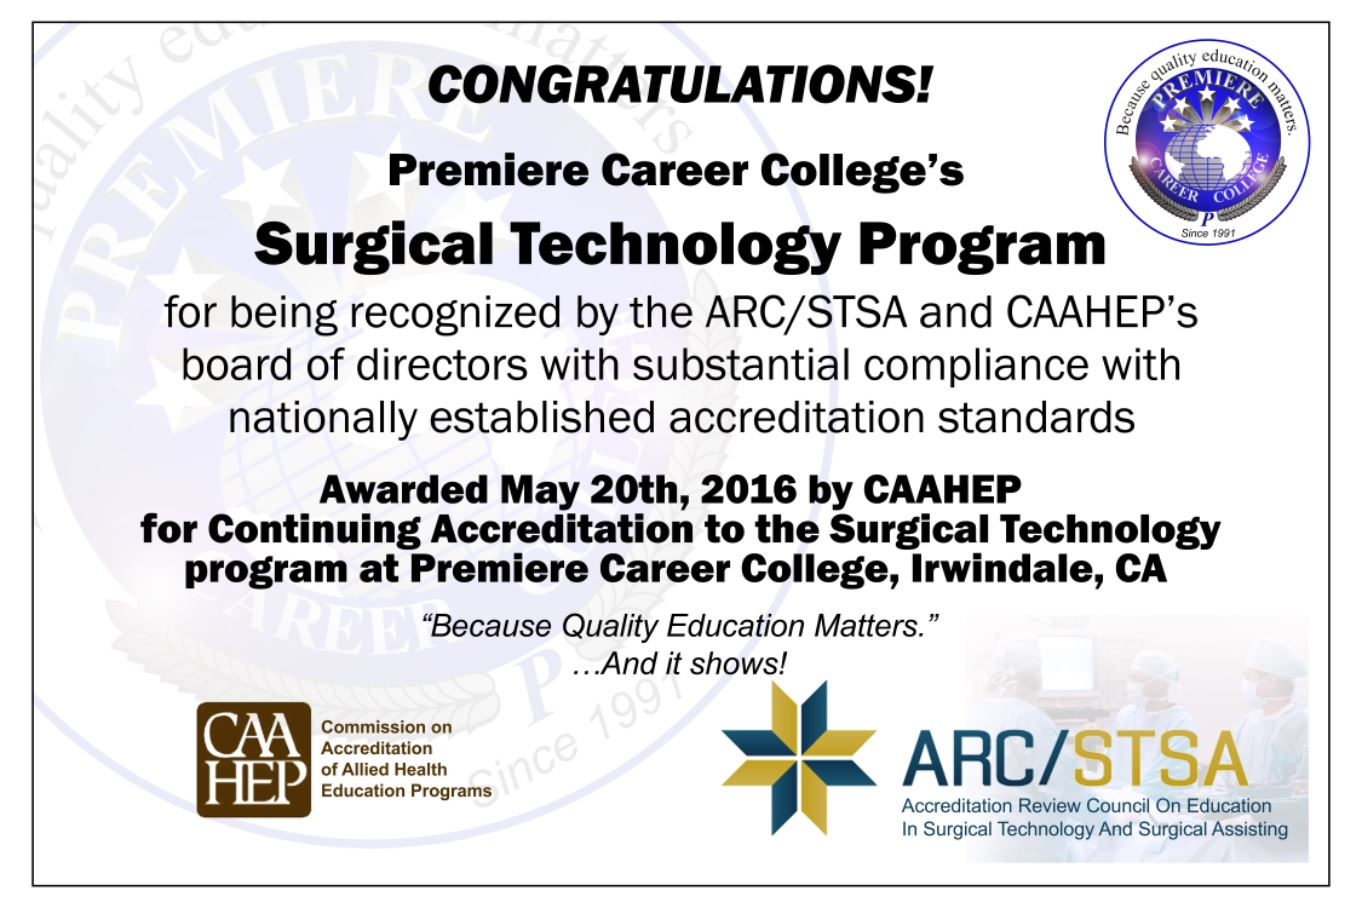 Premiere Career College Over 24 Years Of Quality Education